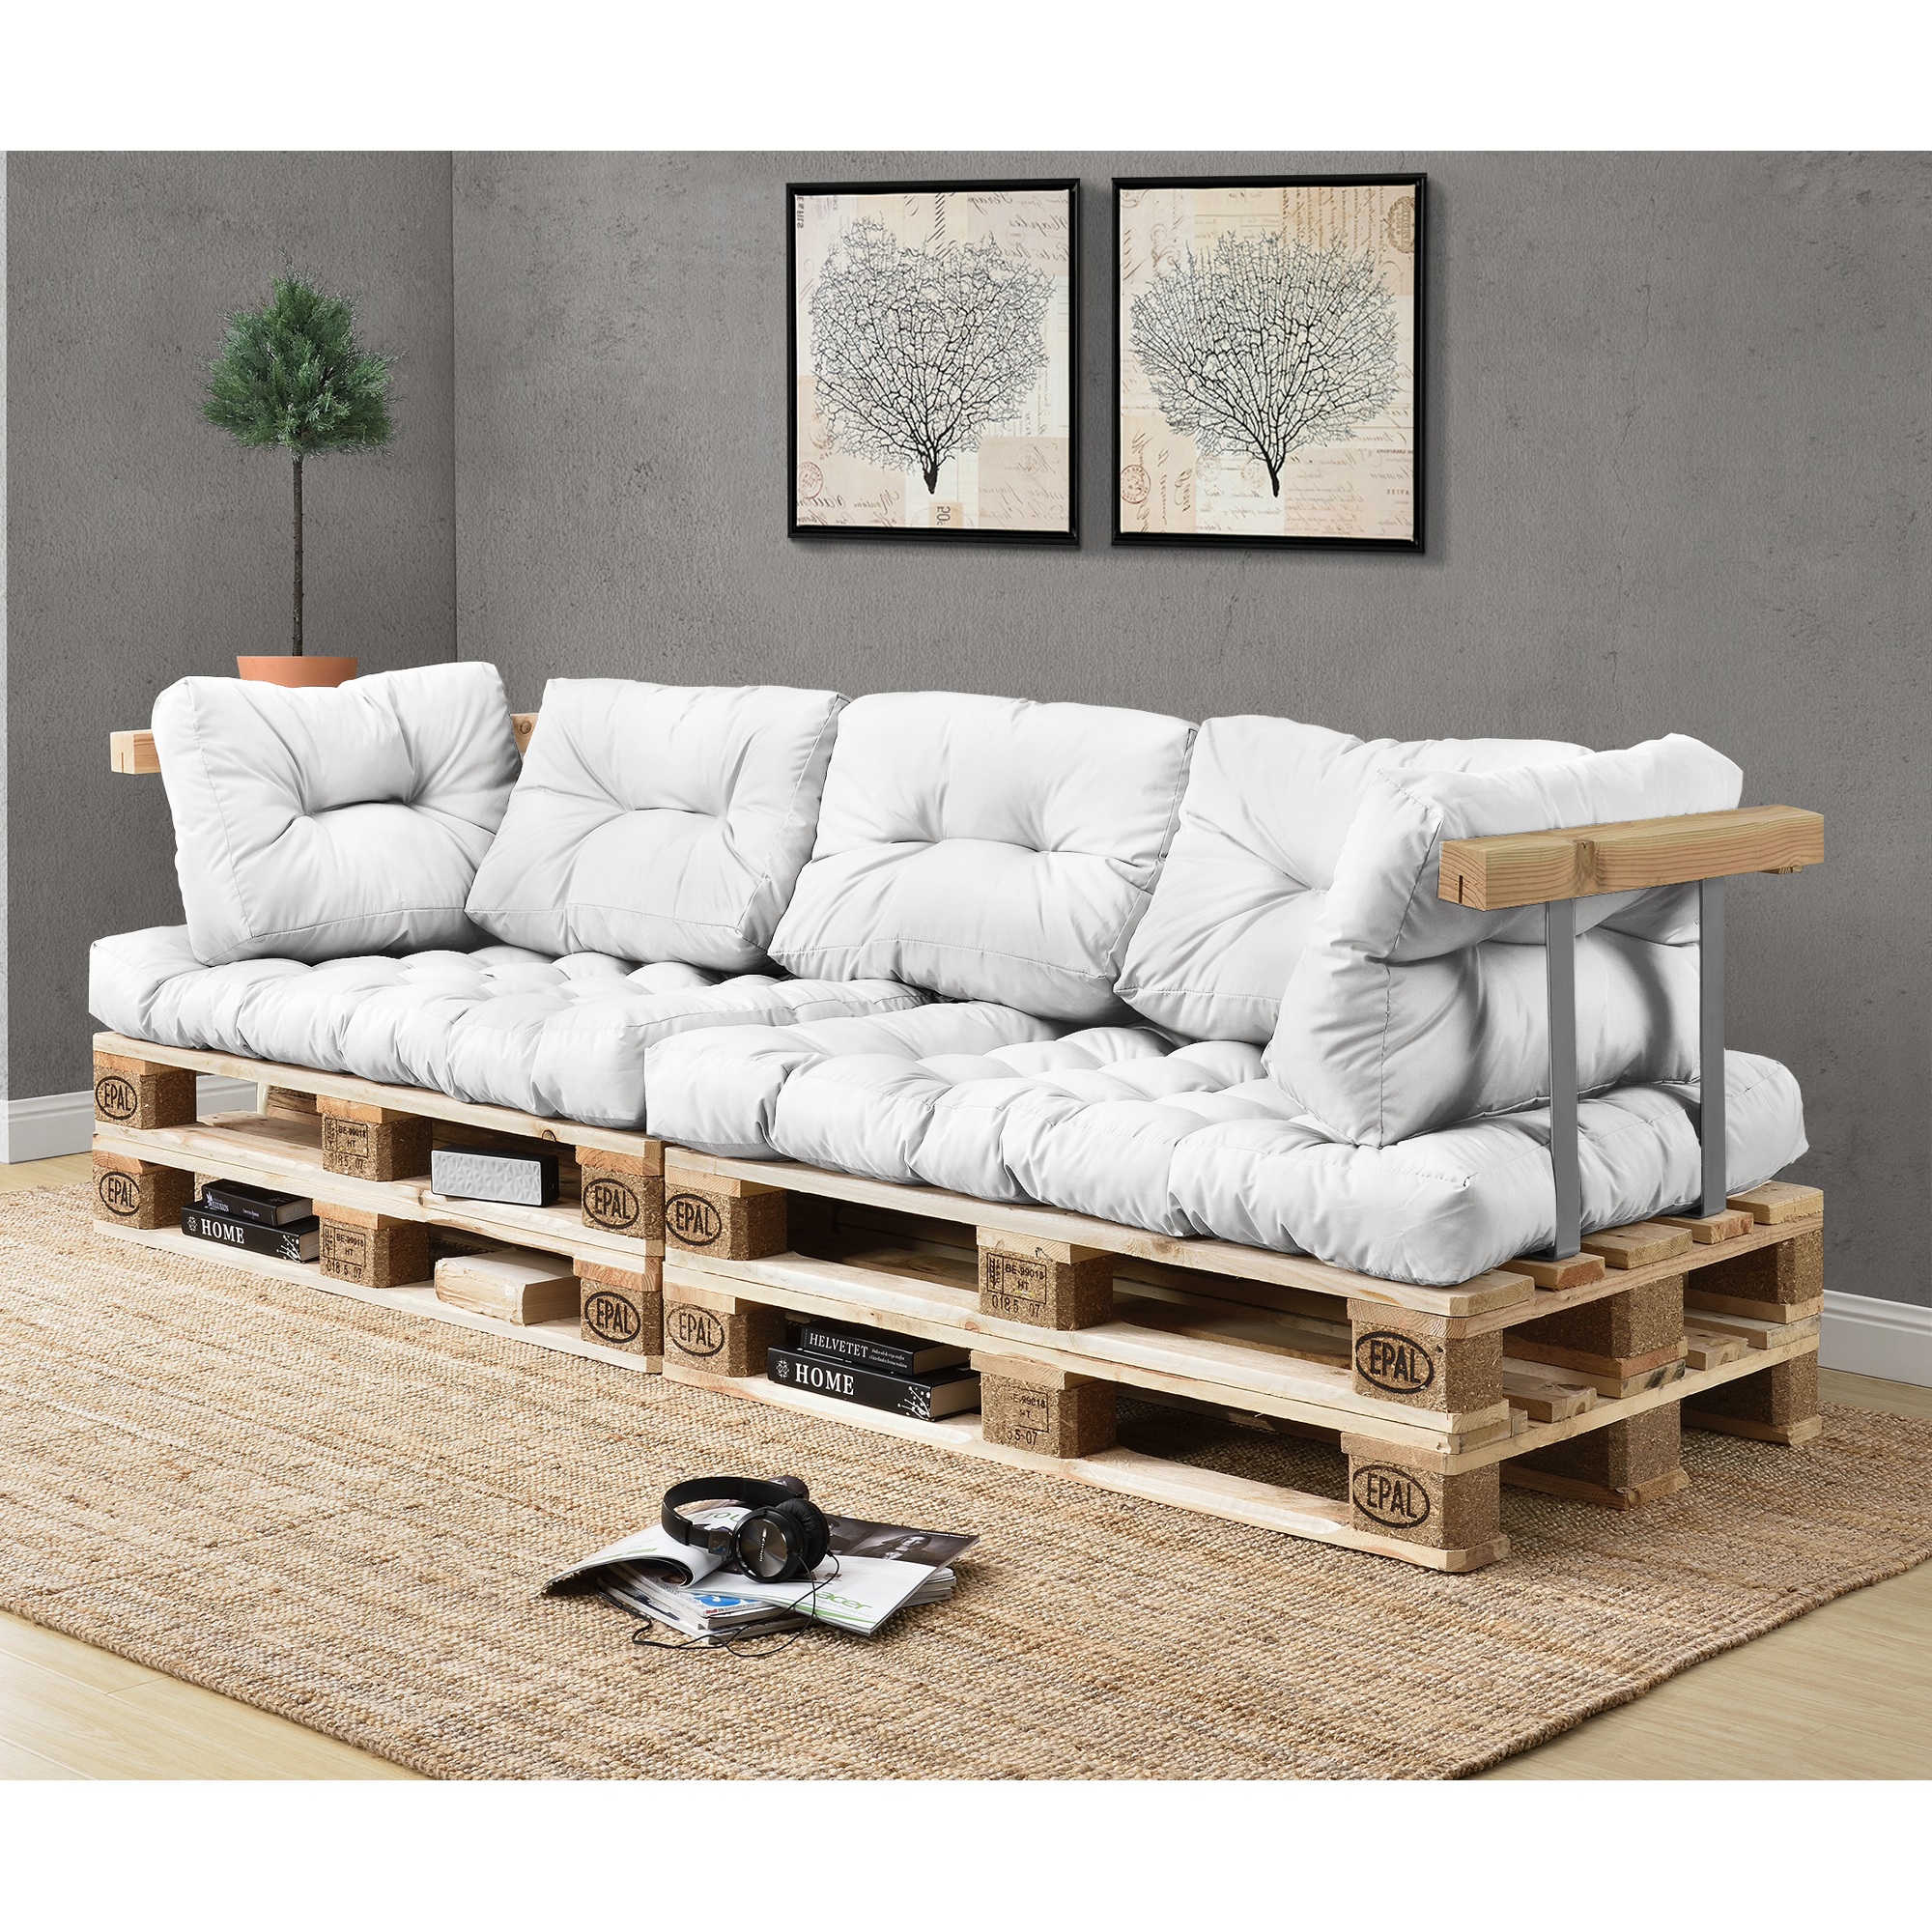 divano pallet bianco design casa creativa e mobili. Black Bedroom Furniture Sets. Home Design Ideas